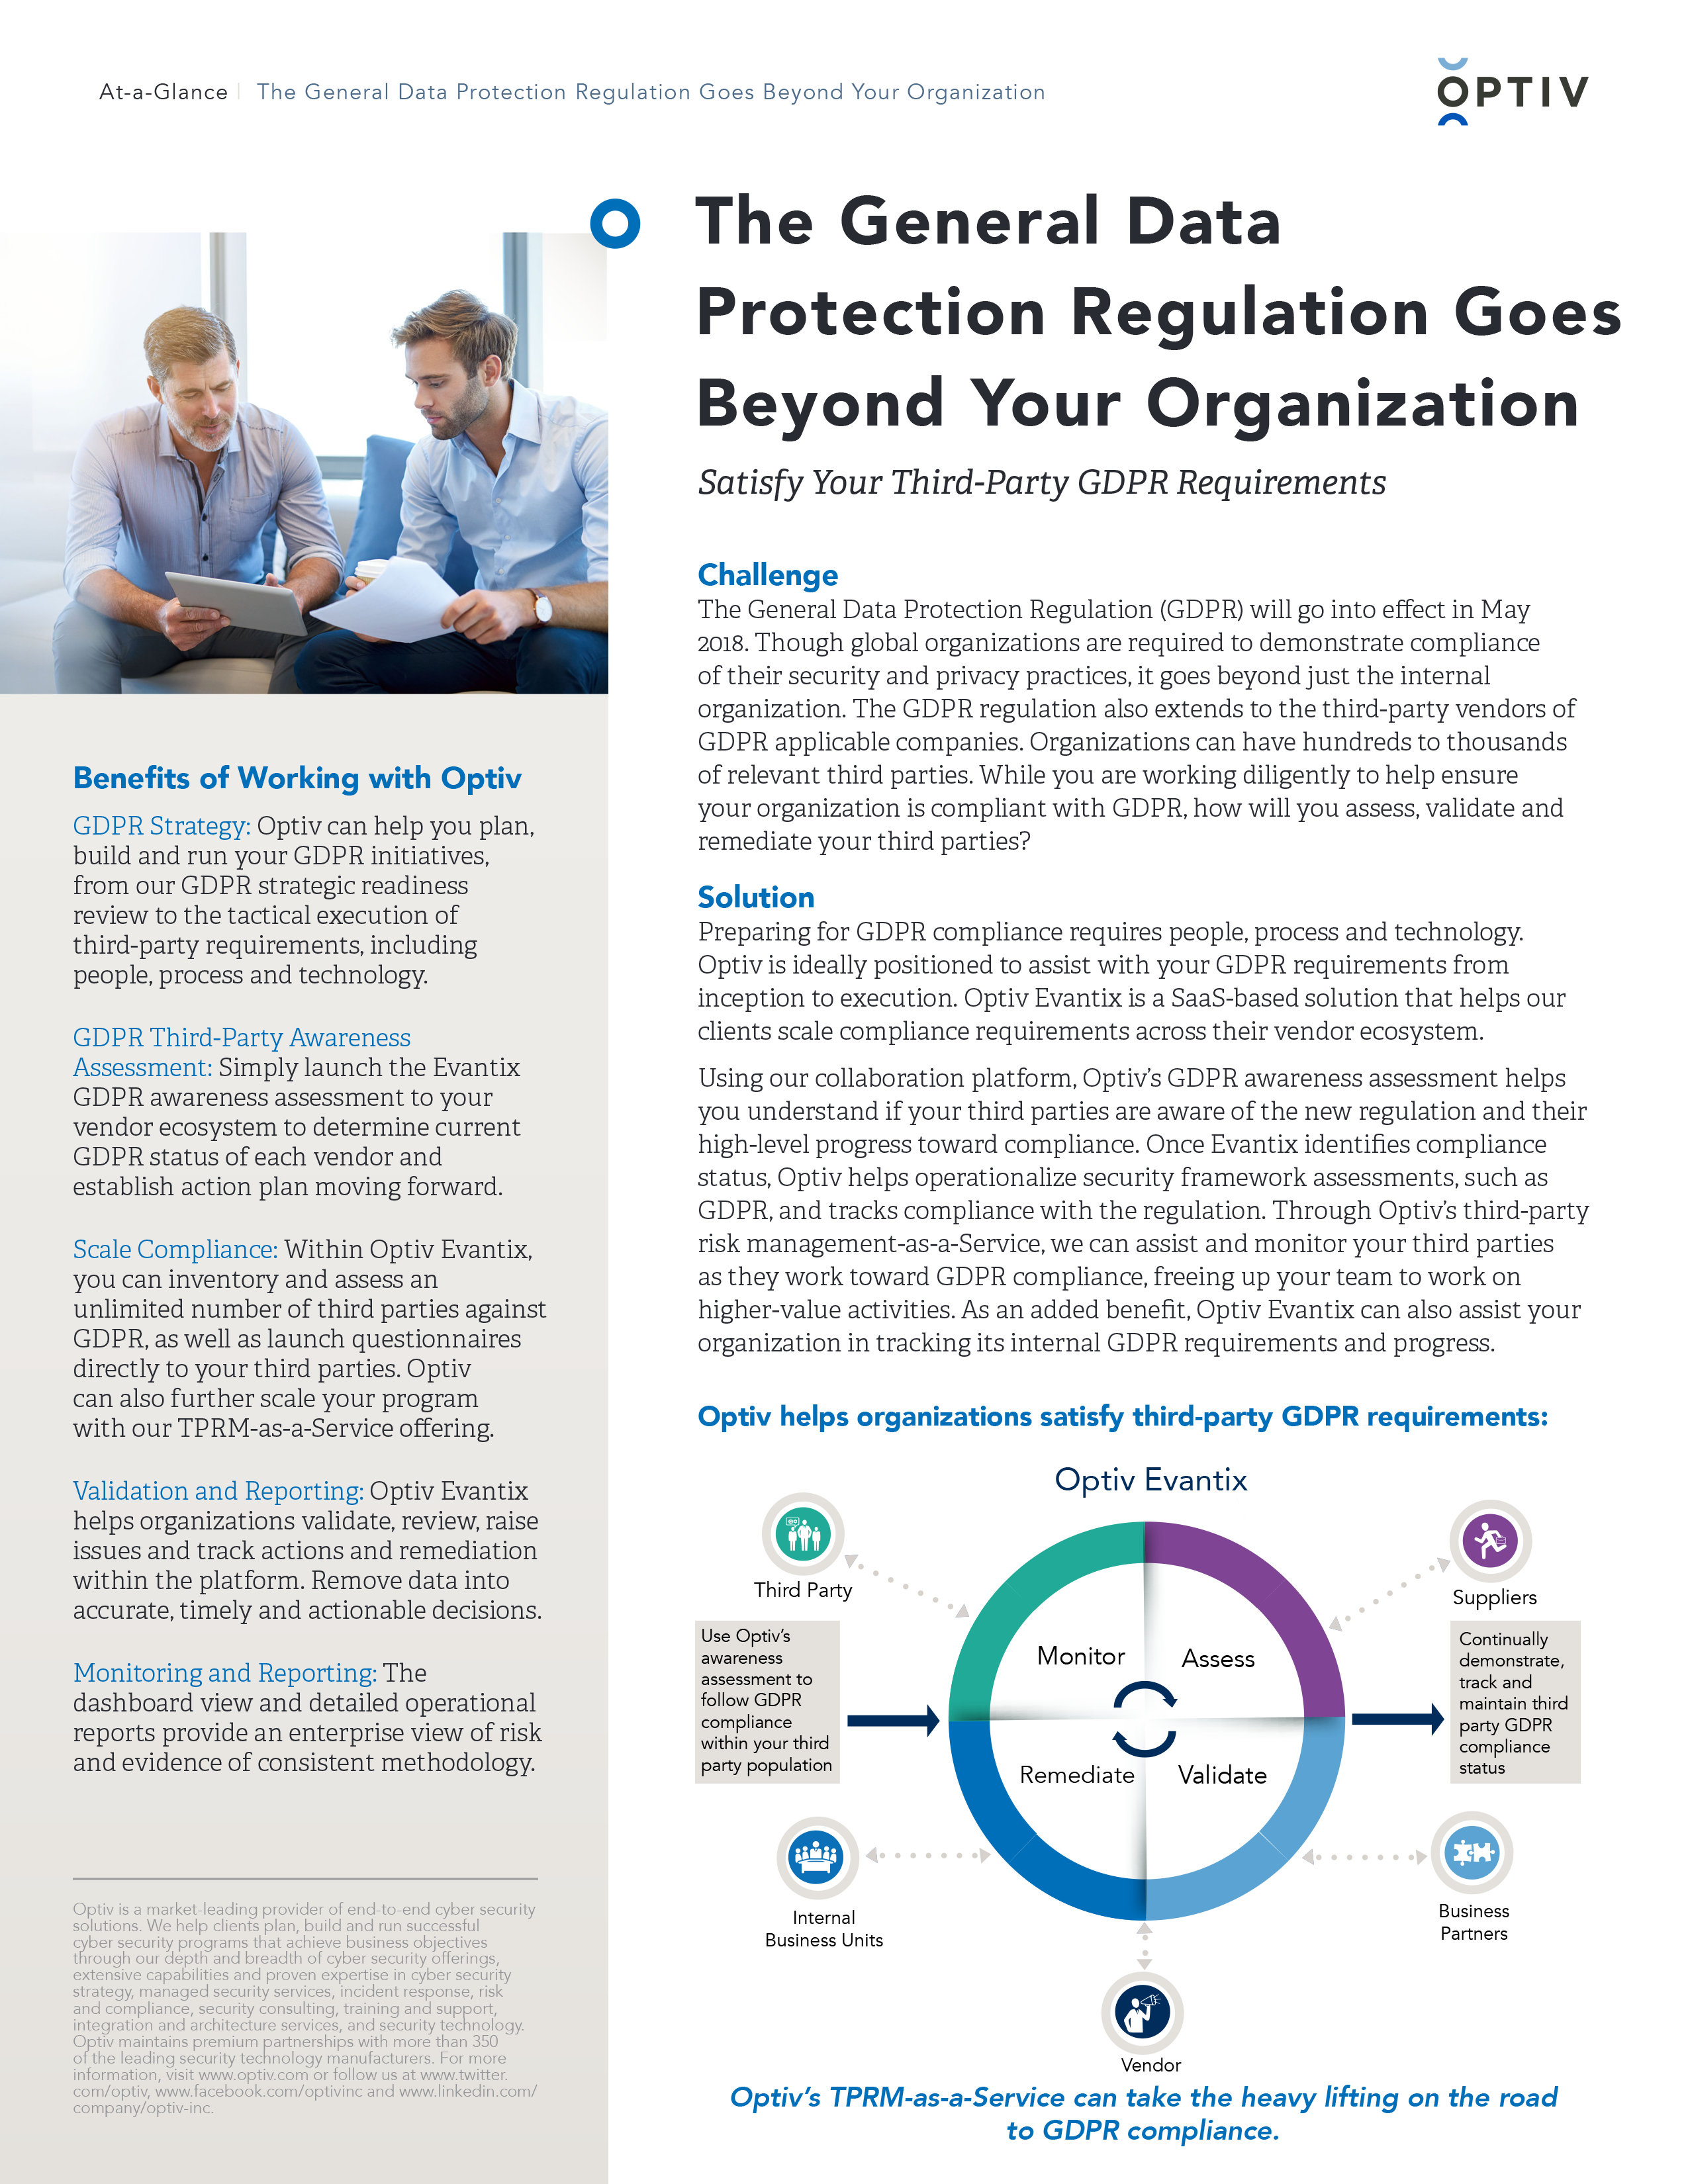 Satisfy Your Third-Party GDPR Requirements